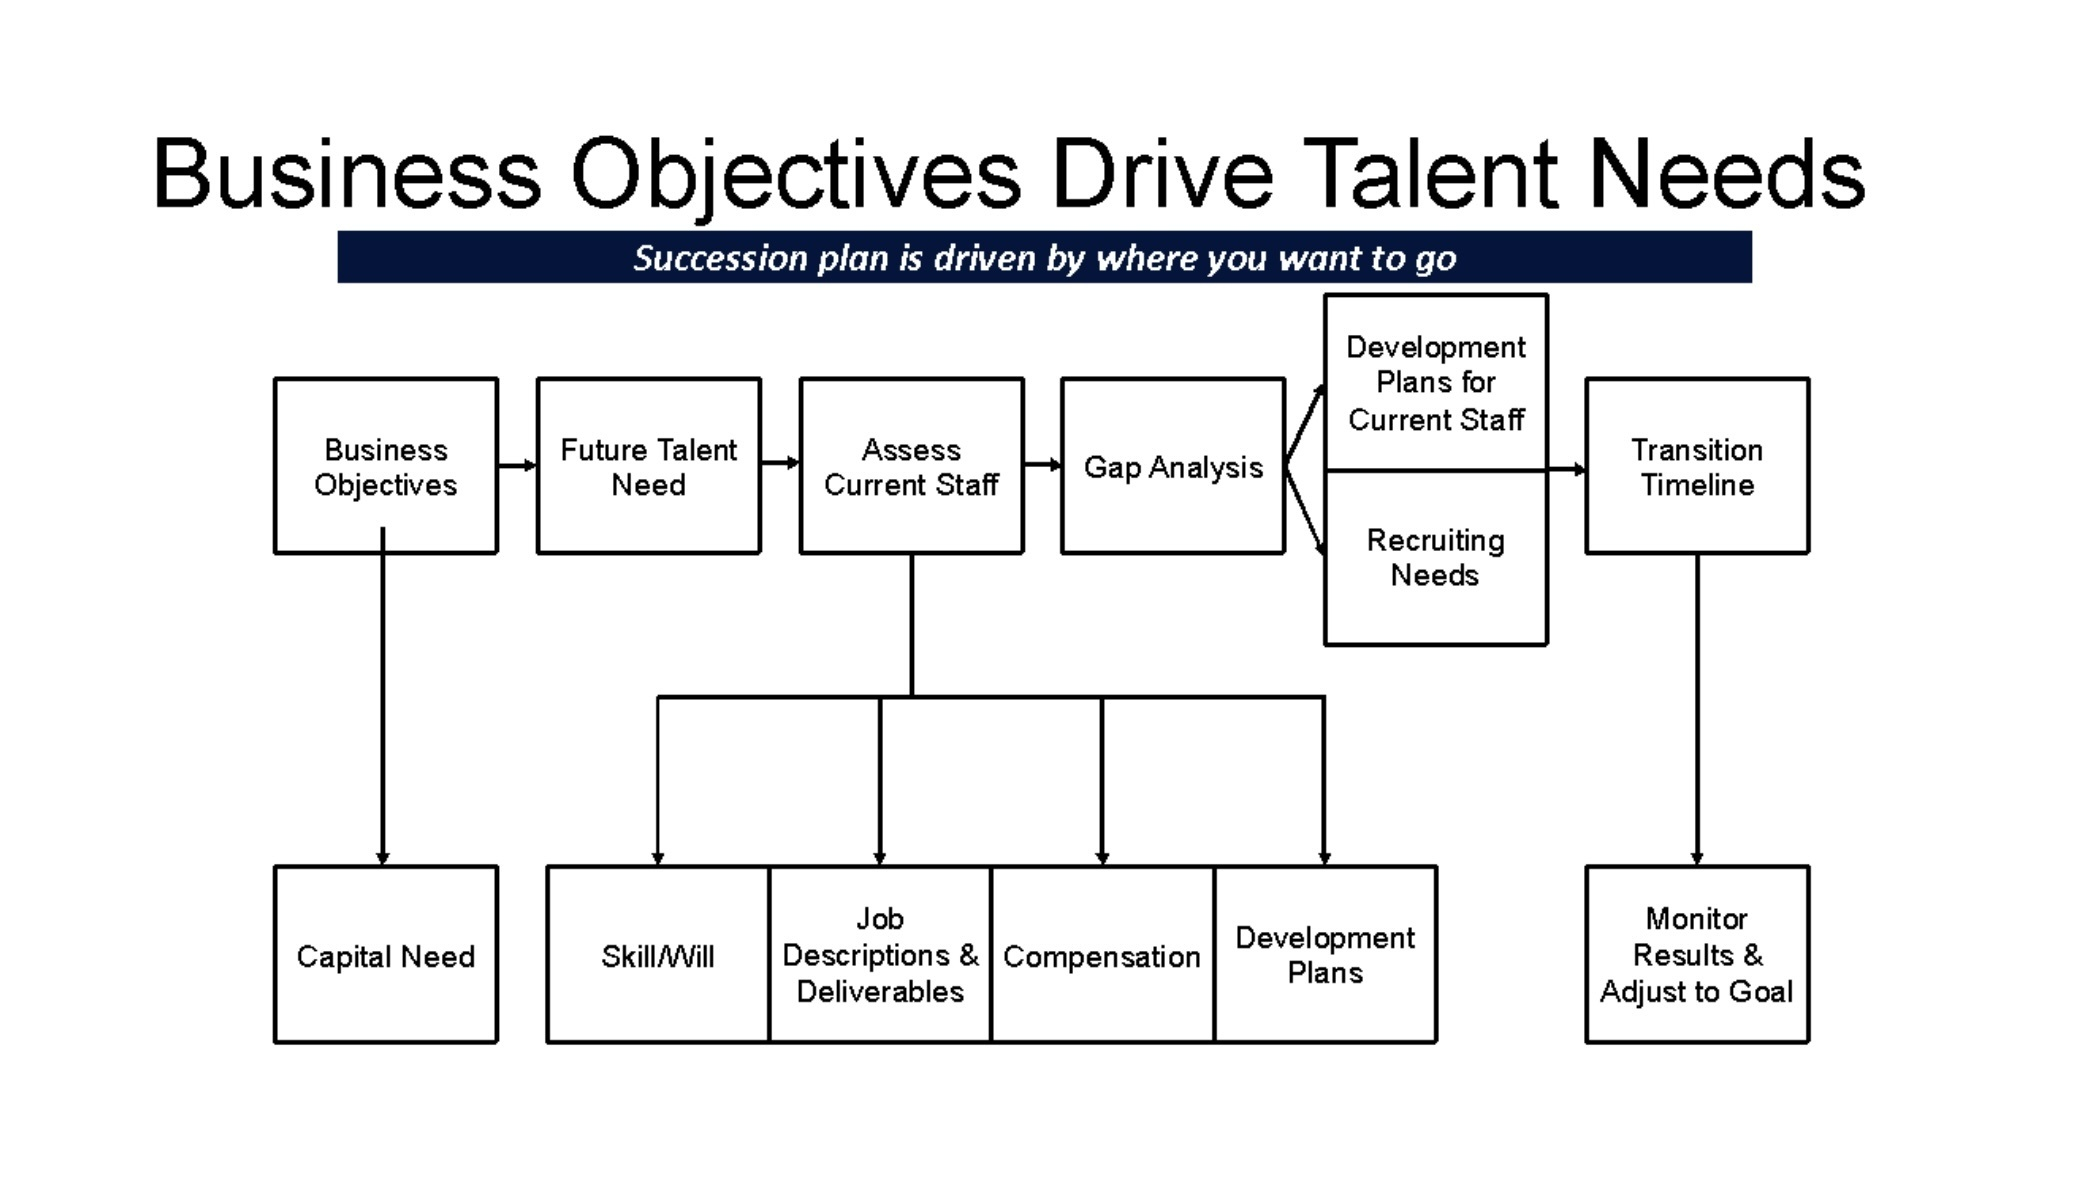 Business Objectives Drive Talent Needs